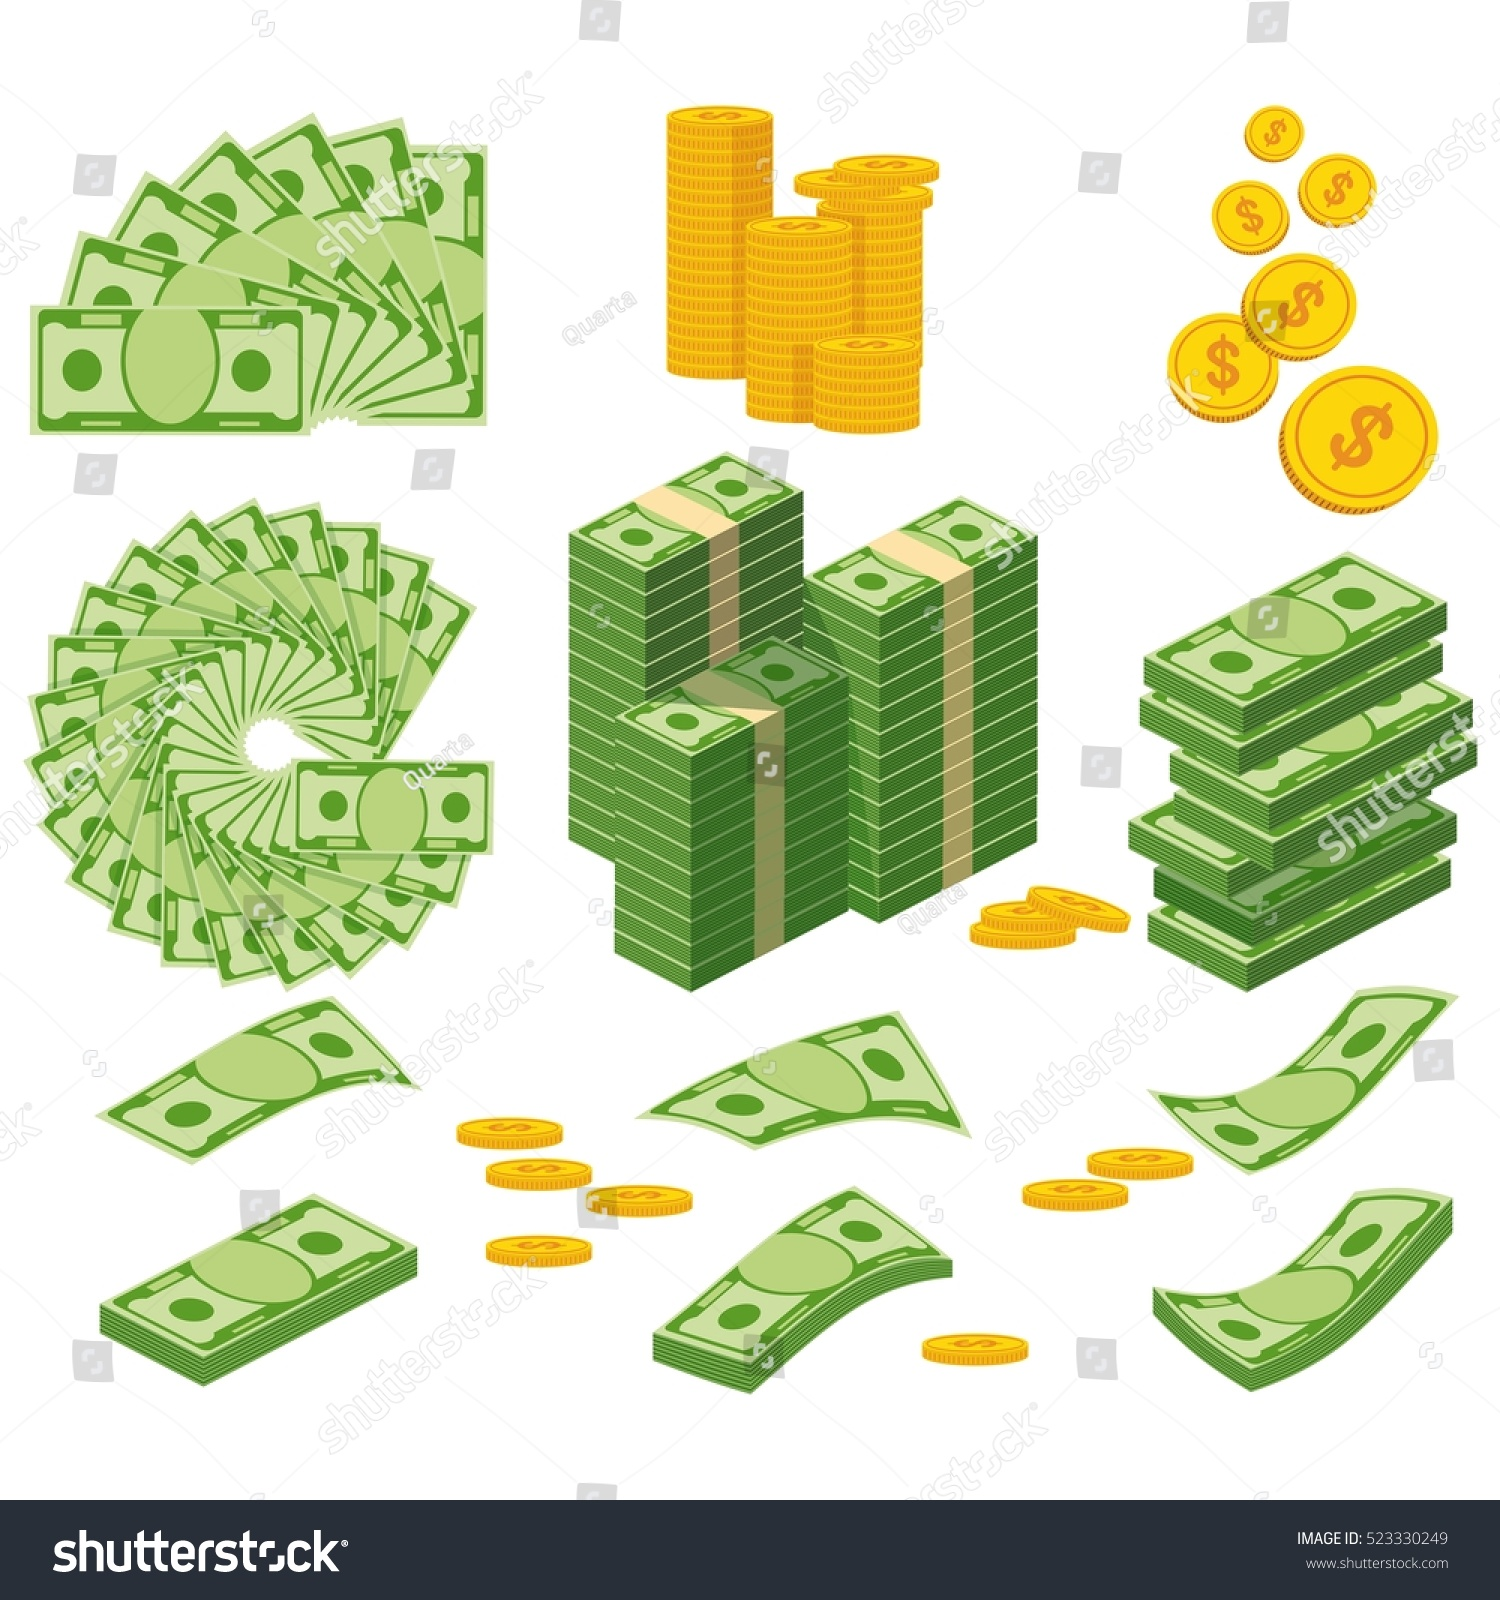 Set a various kind of money. Packing in bundles of bank notes, bills fly, gold coins. Flat vector cartoon money illustration. Objects isolated on a white background. #523330249